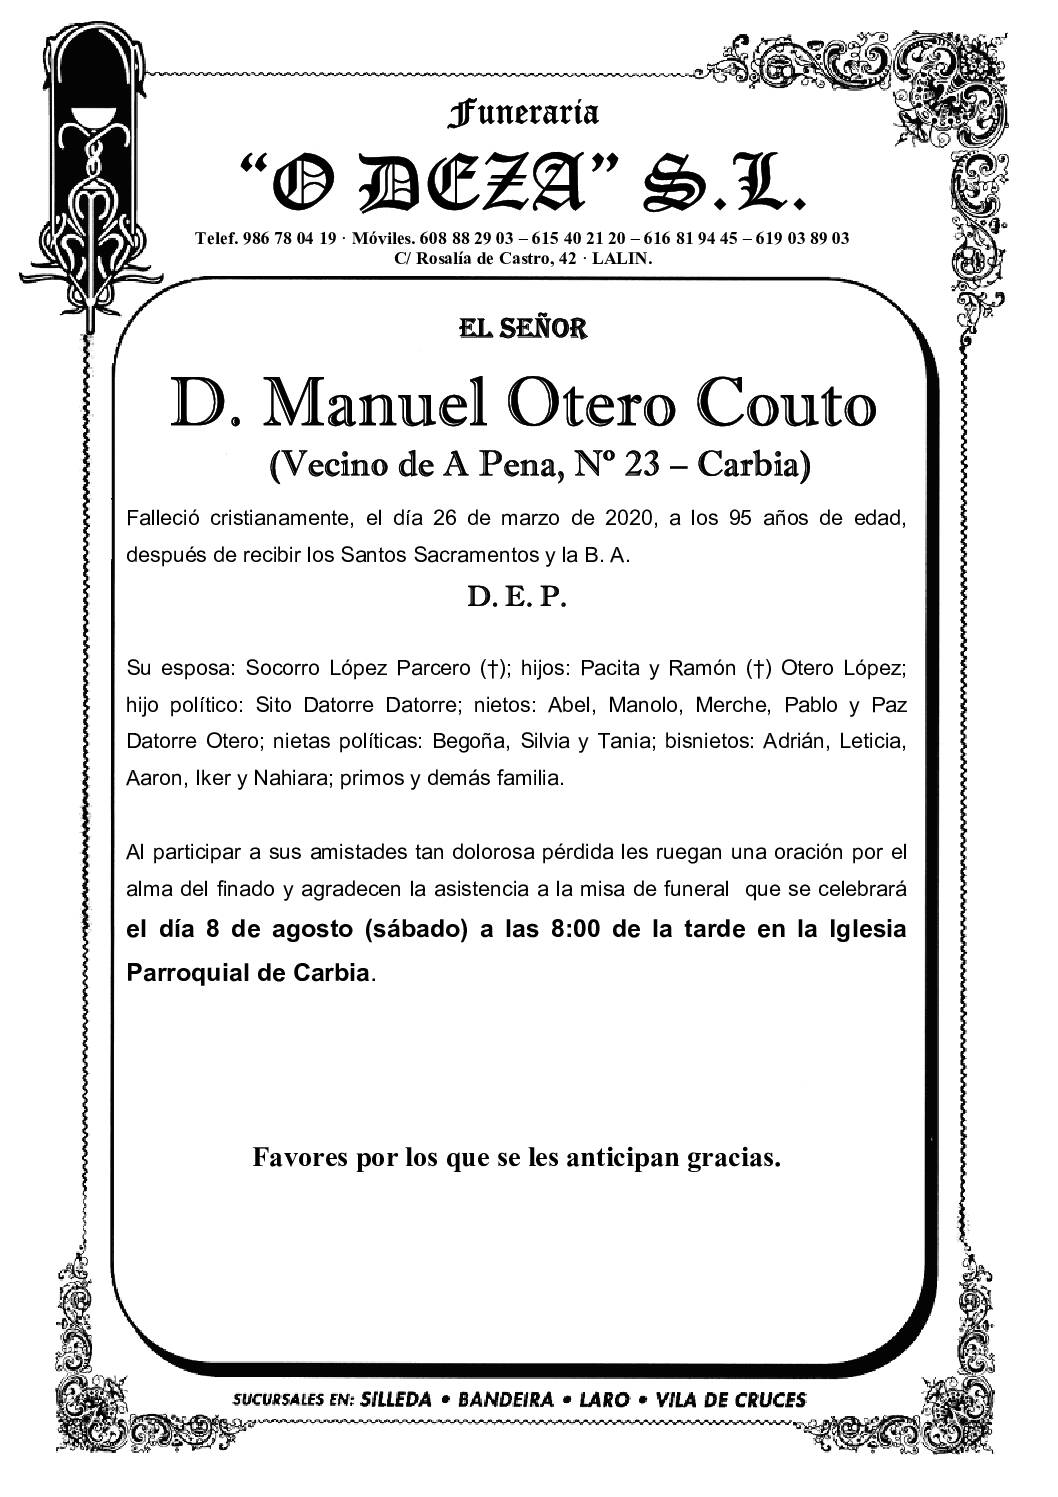 D. MANUEL OTERO COUTO